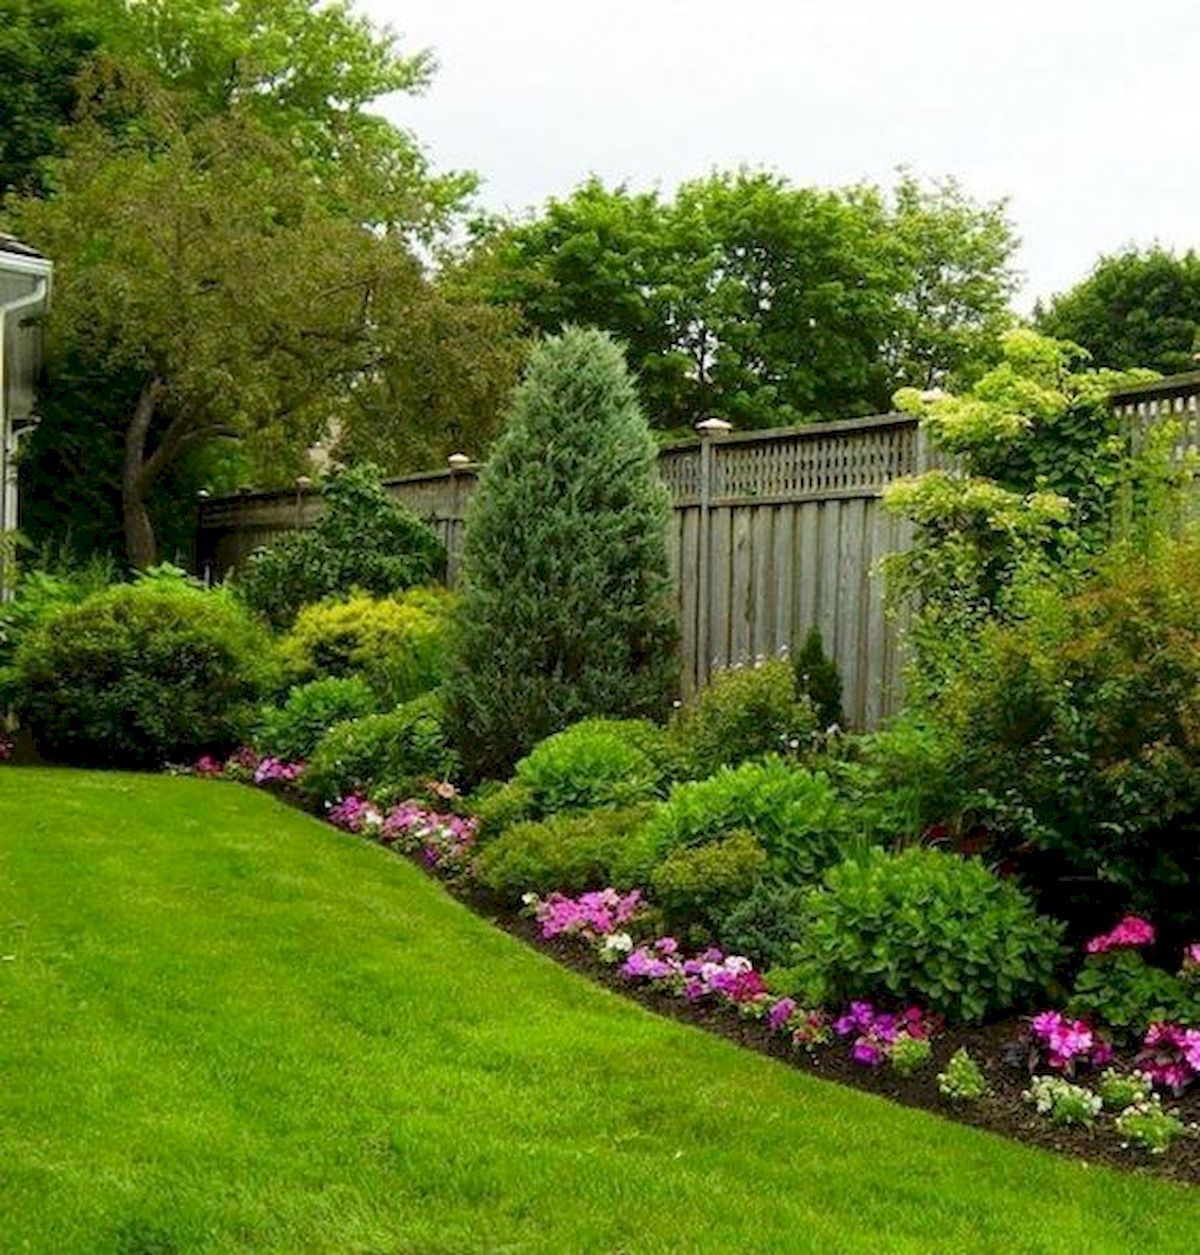 pin by windstar gifts - living well on gardening